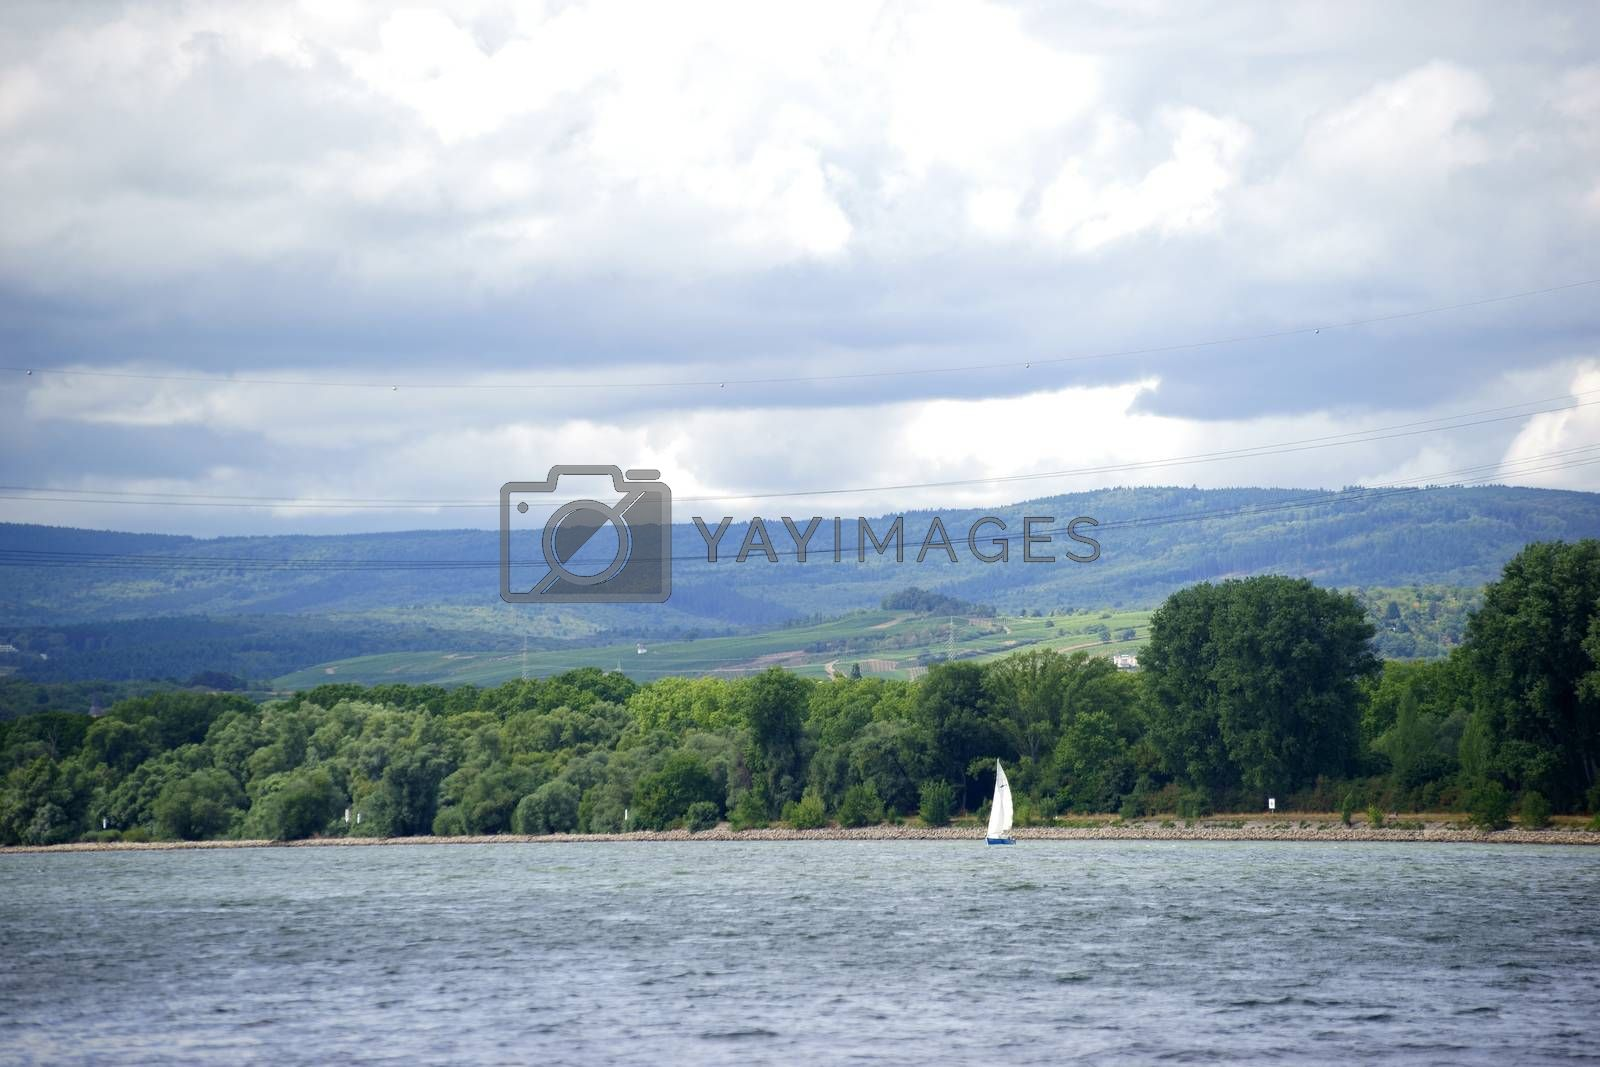 A sailboat sailing on the river Rhine in front of of the Taunus mountain range during a weather change.